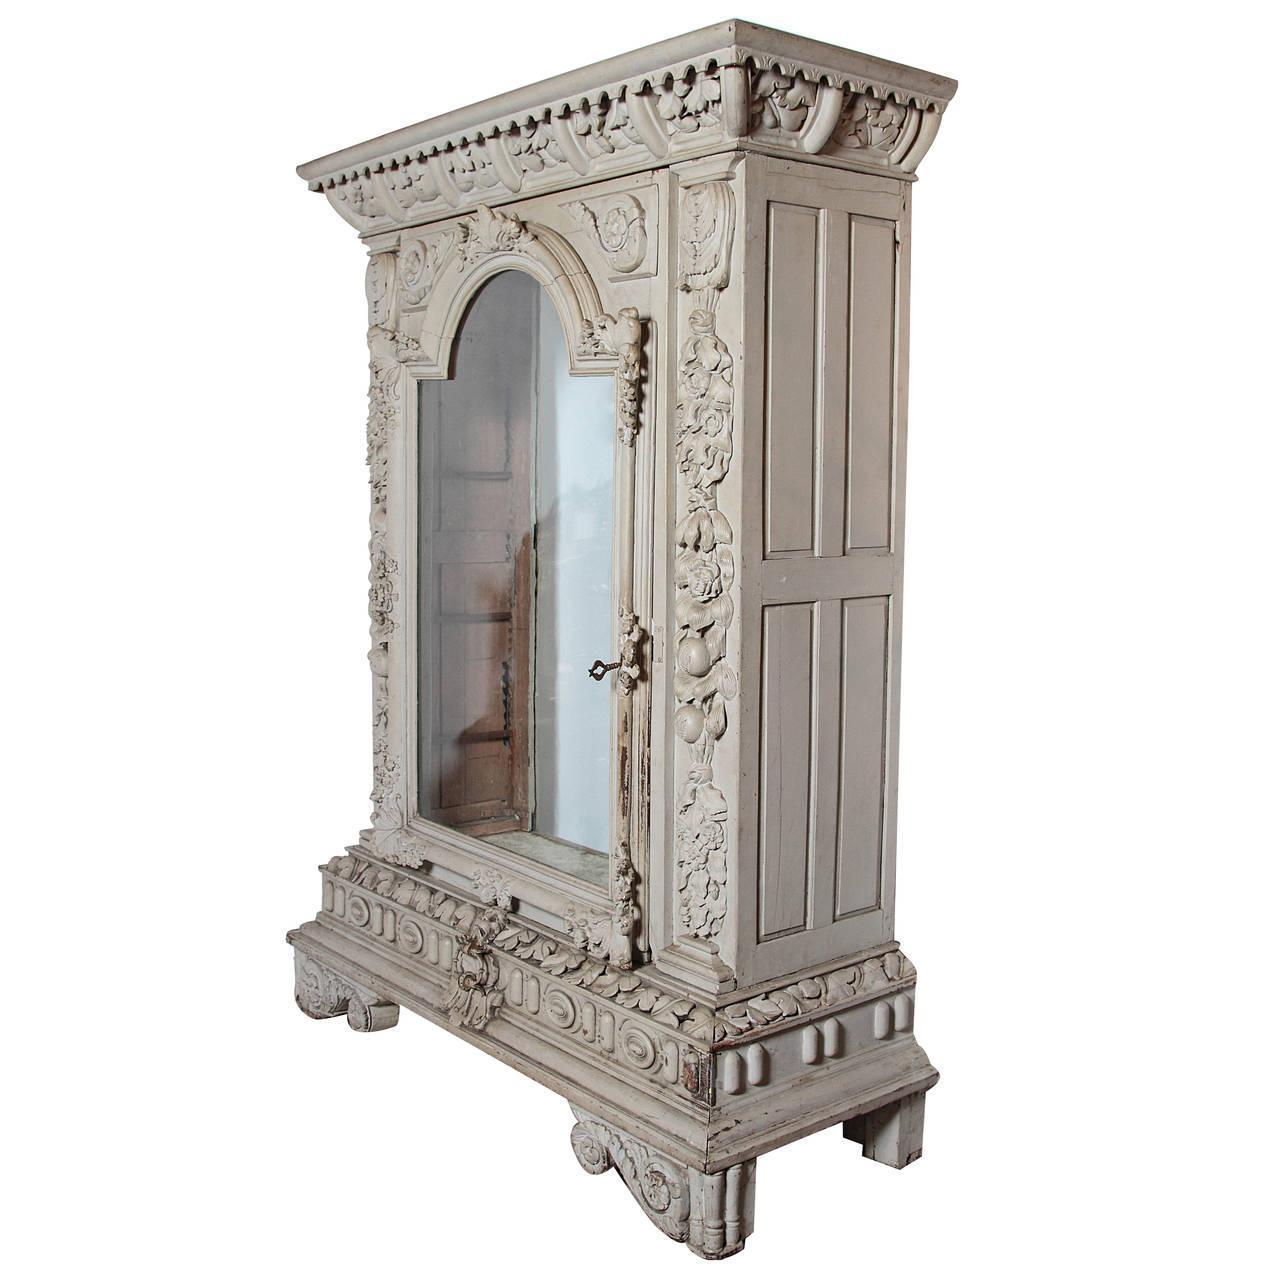 Circa 1830 Chateau Vitrine from the Southwest of France